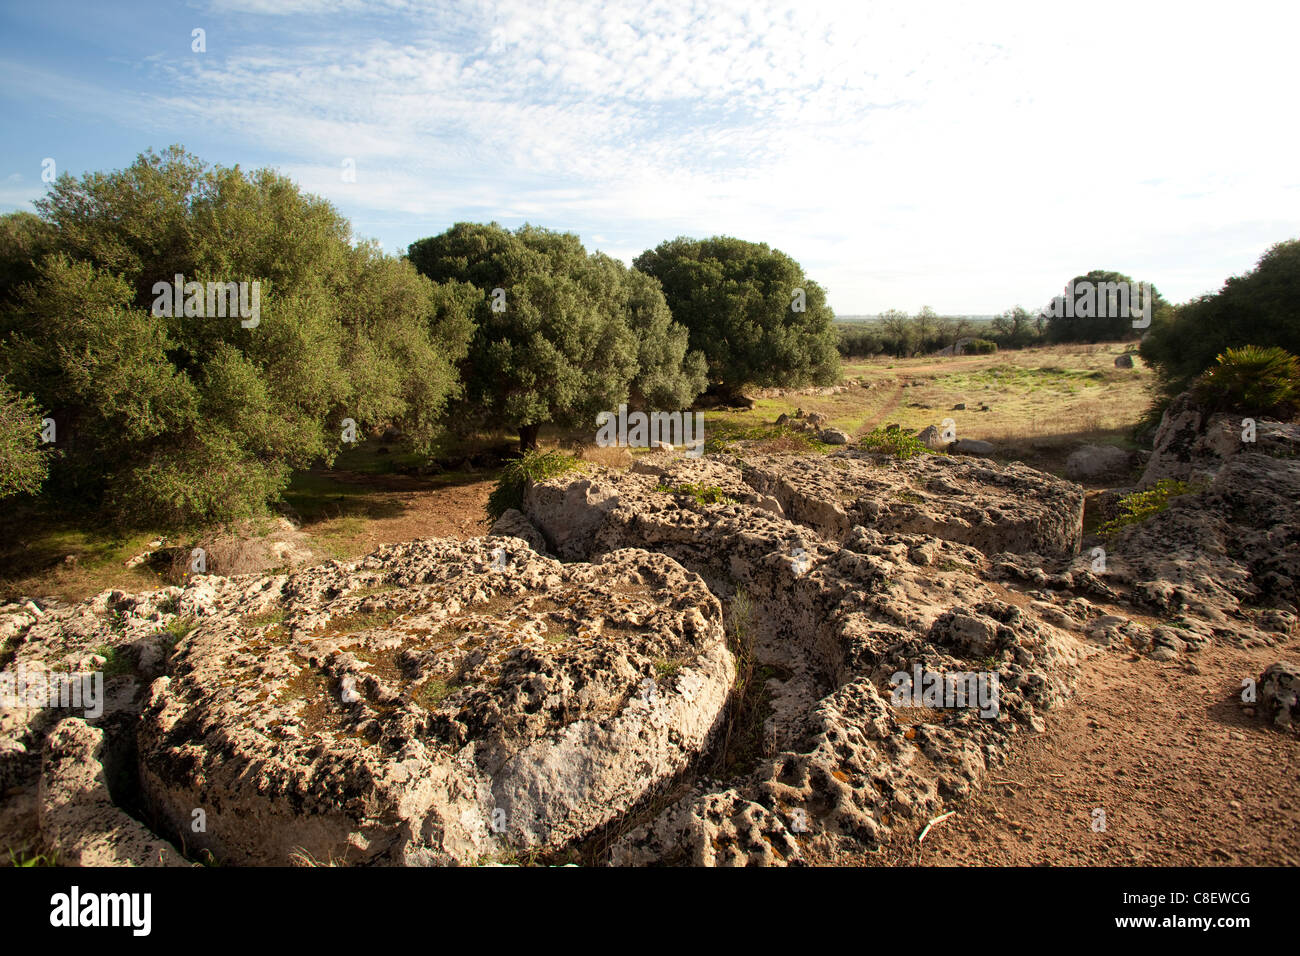 The ancient quarries of Cusa, Sicily, Italy - Stock Image